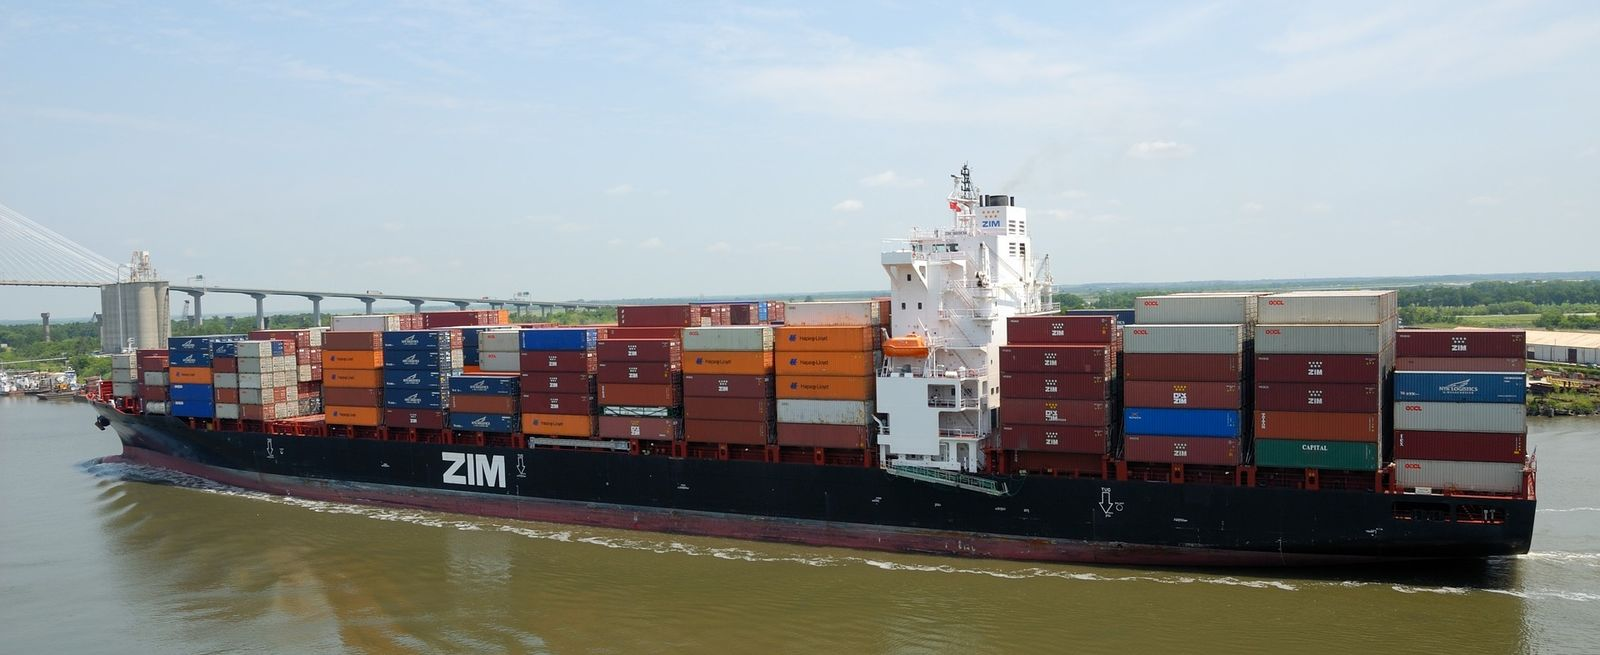 ZIM ship moving on water with stacked cargo containers